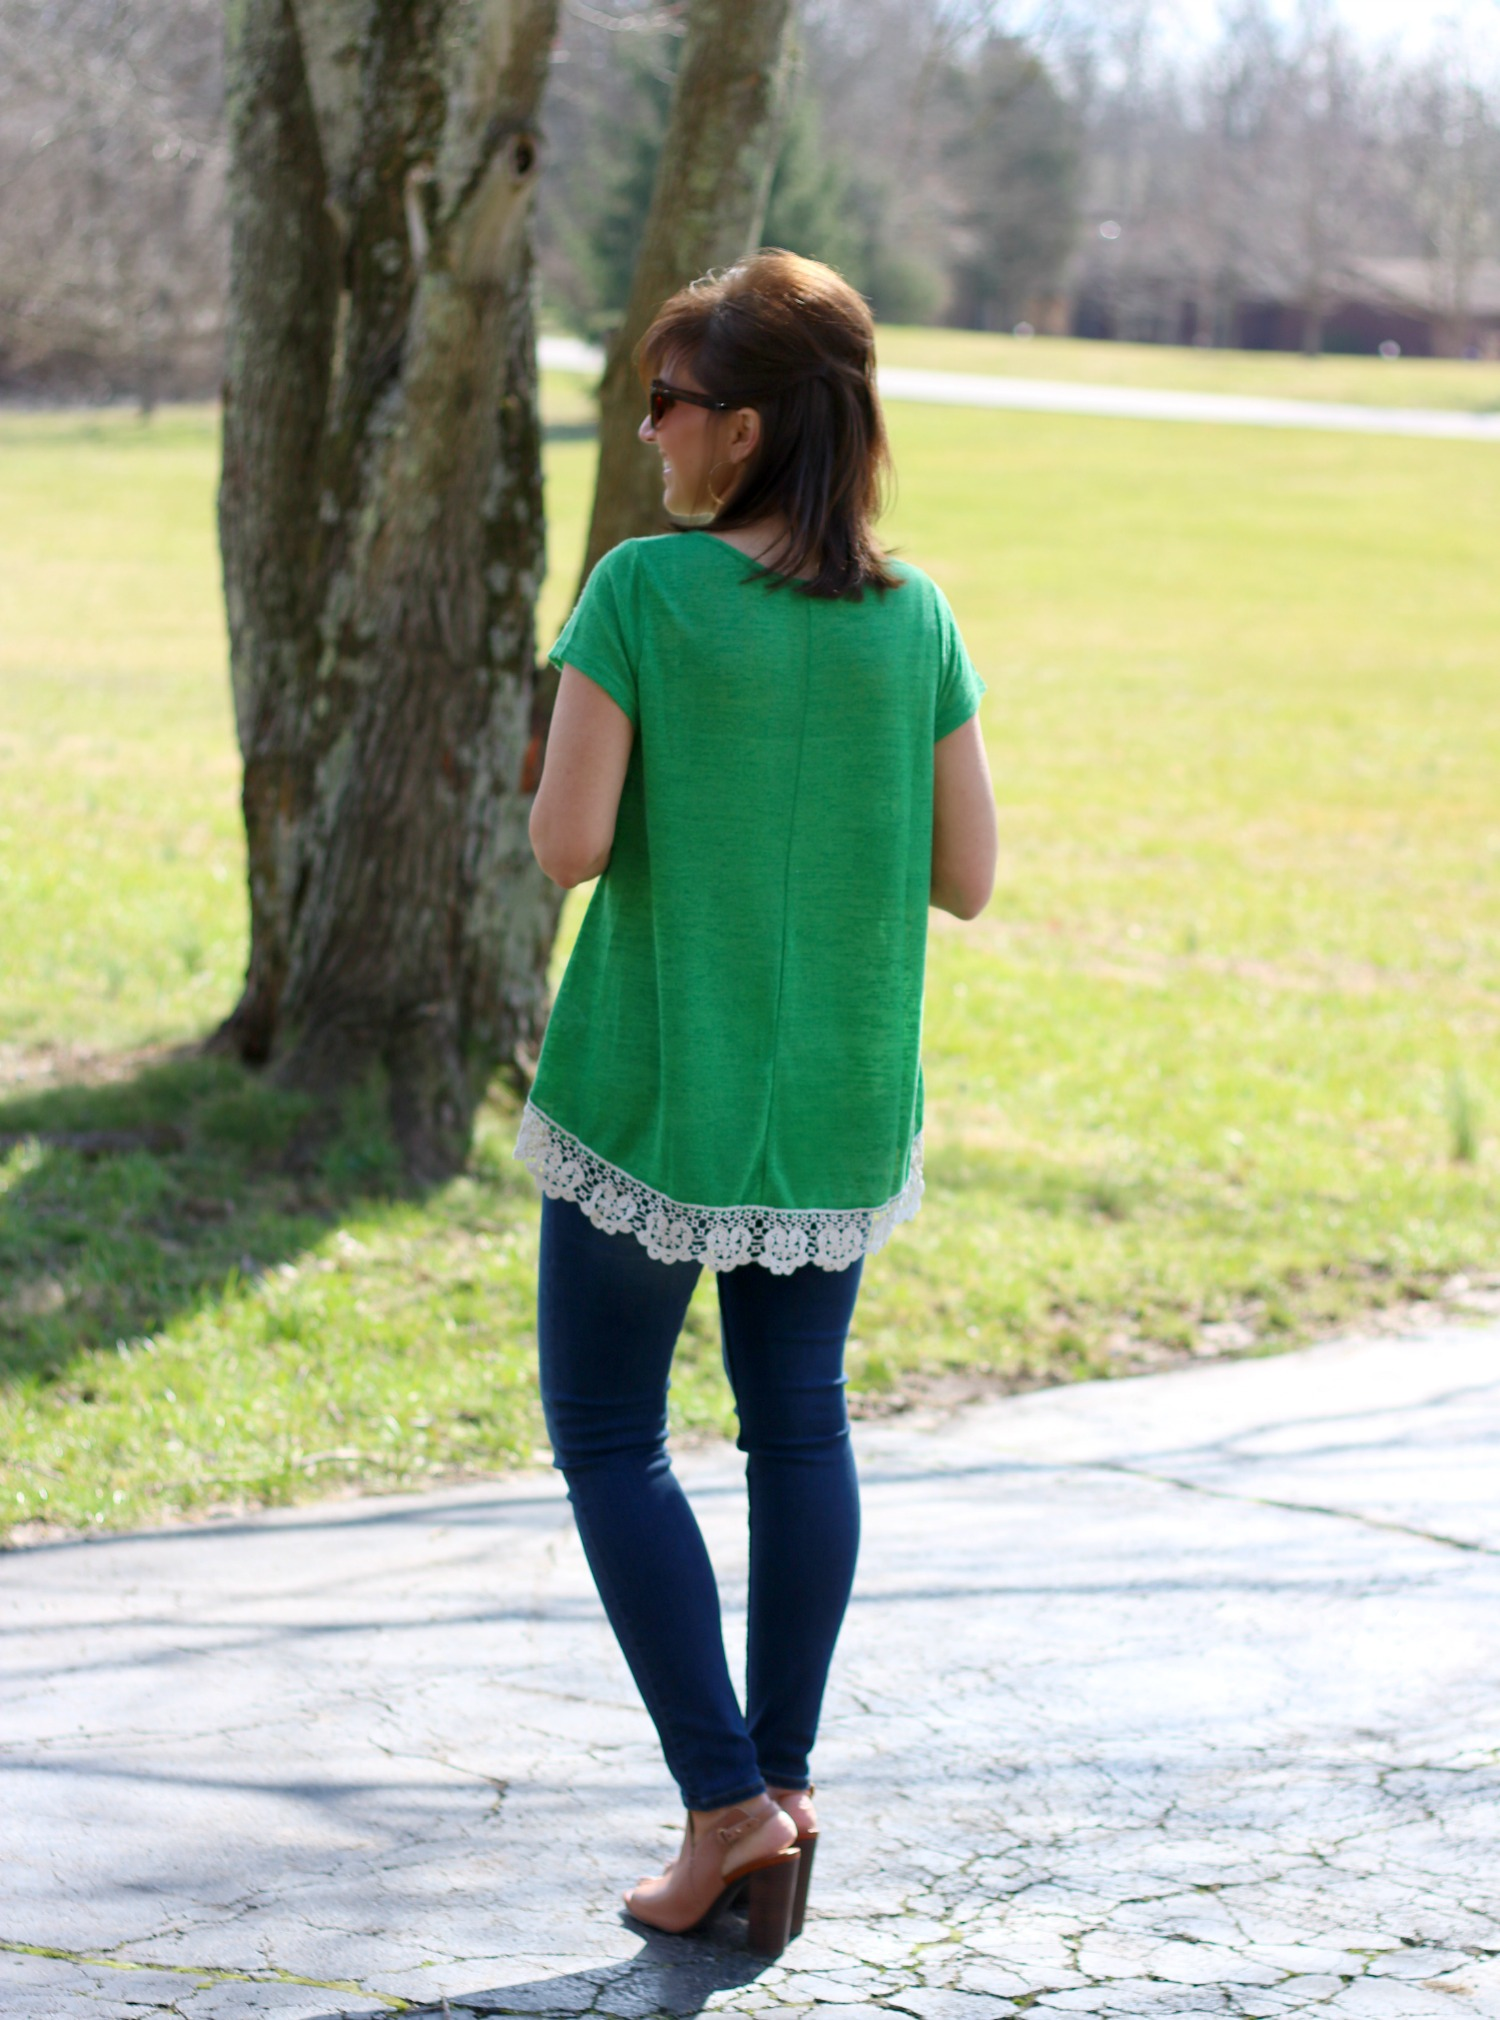 27 Days of Spring Fashion: St. Patrick's Day Outfit